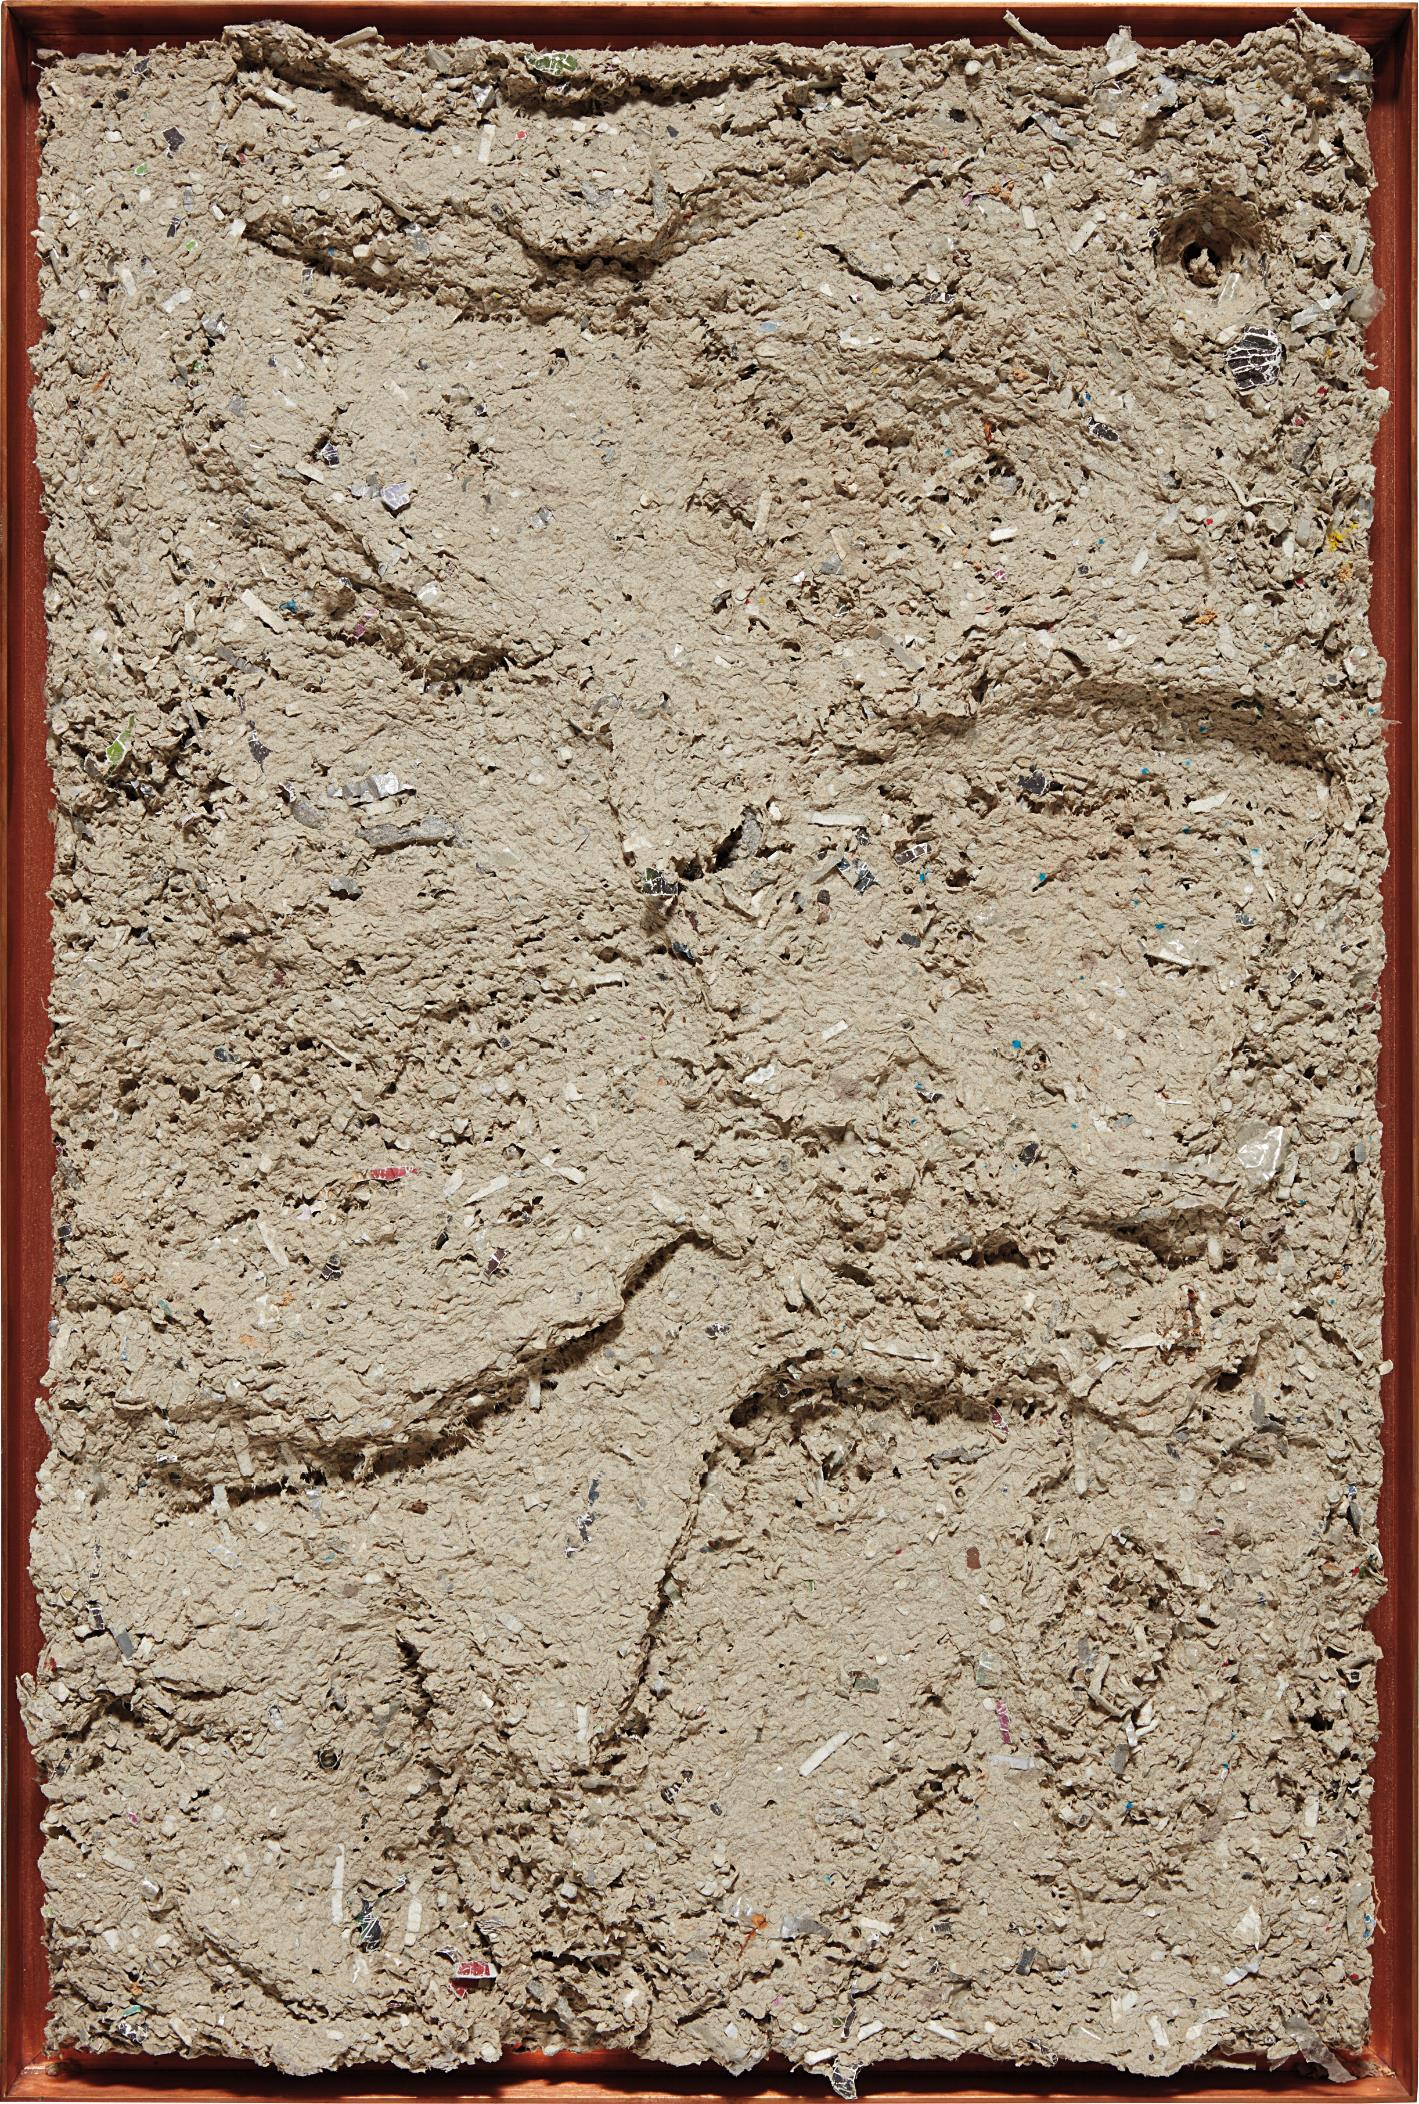 Walead Beshty-Selected Works (2011 - 2012/March 17Th 2011 - March 15, 2012)-2012